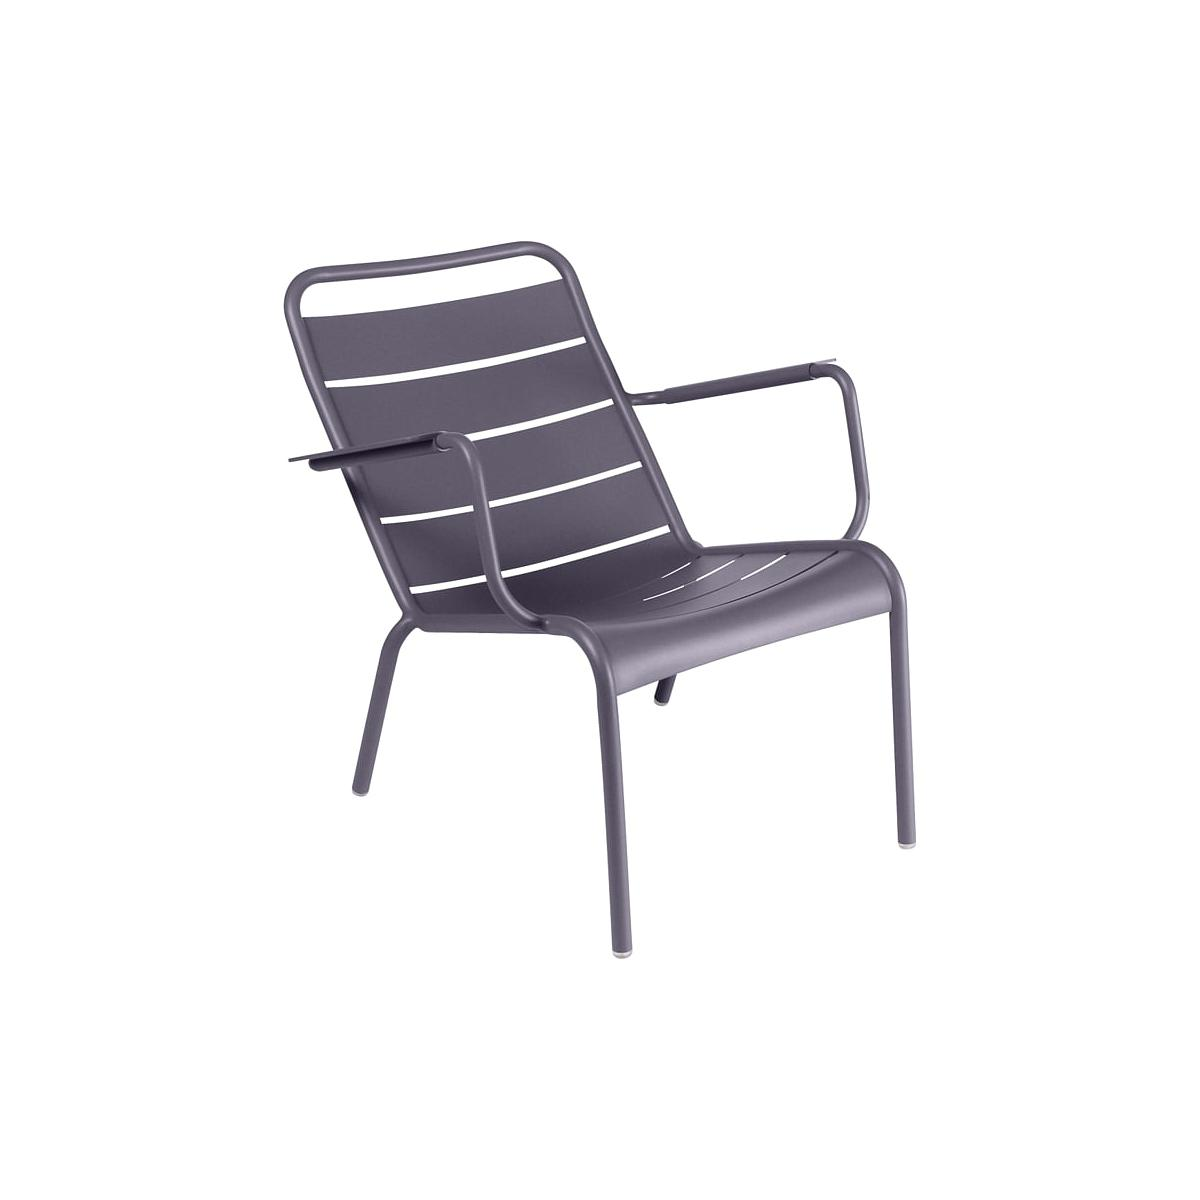 LUXEMBOURG by Fermob Fauteuil bas Prune